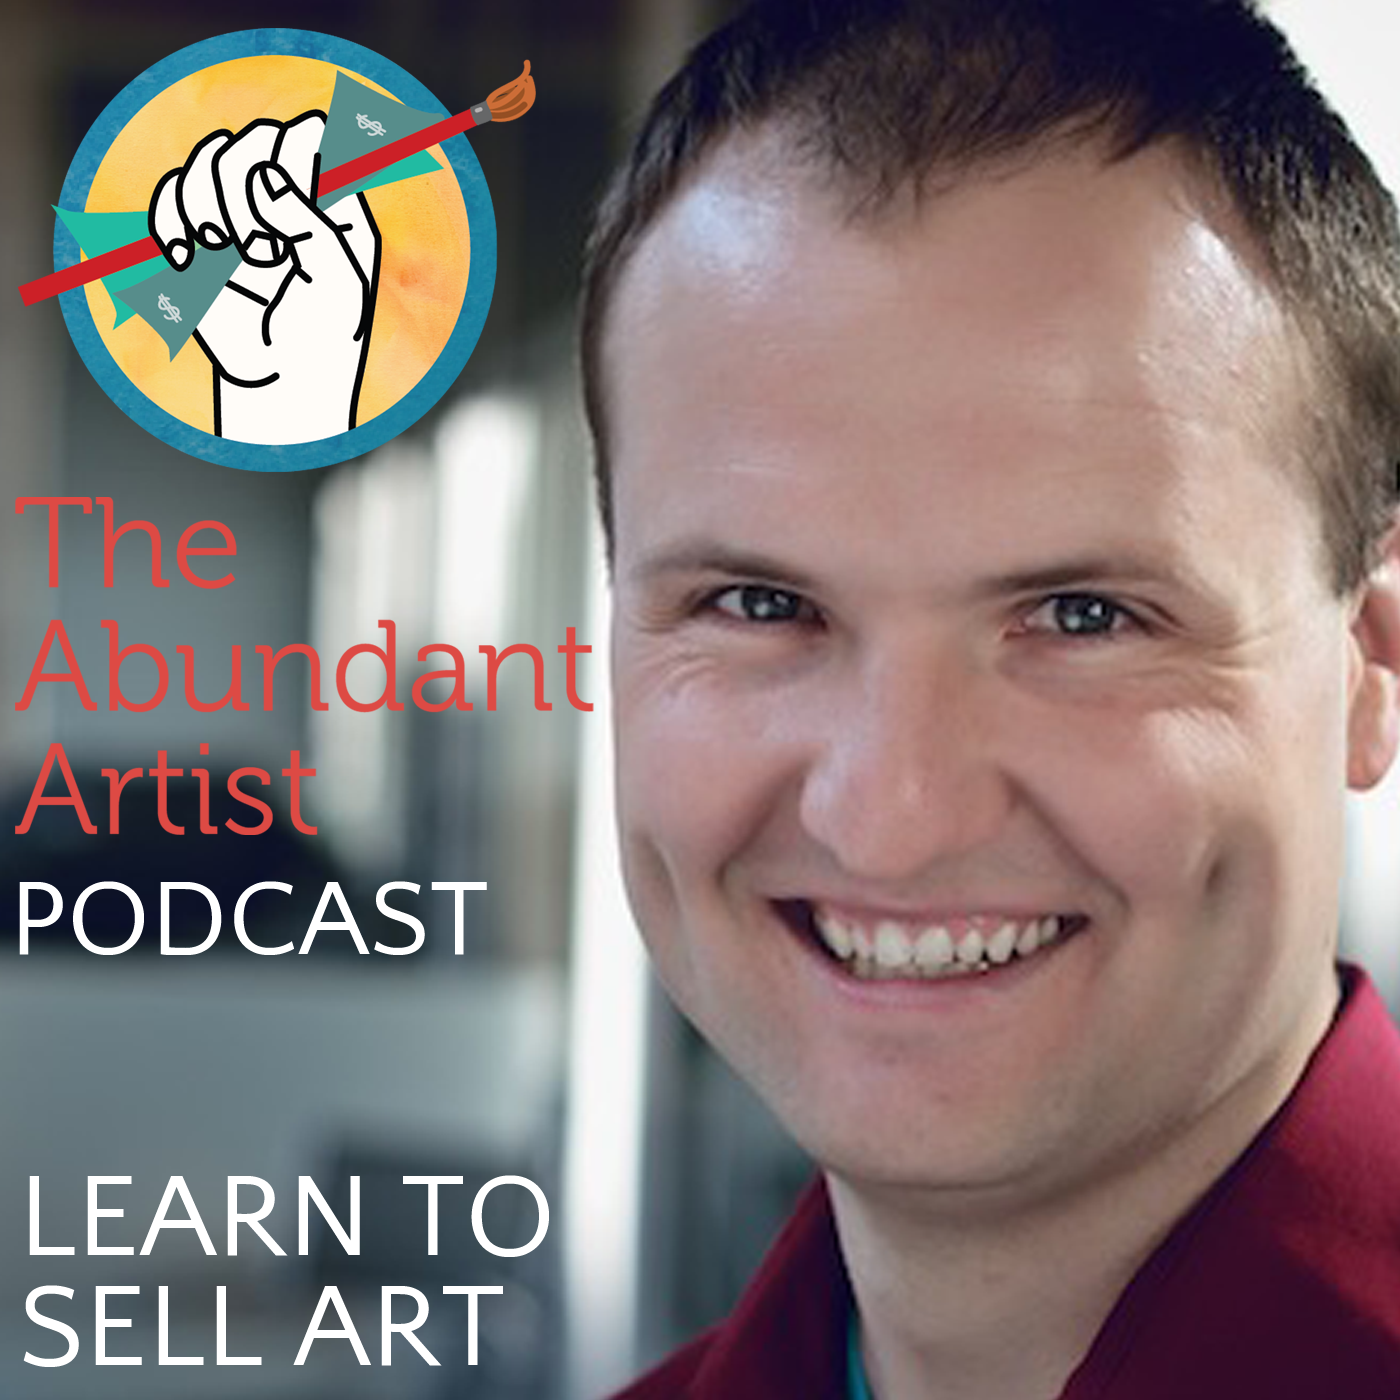 How to Sell Art: The Abundant Artist Podcast